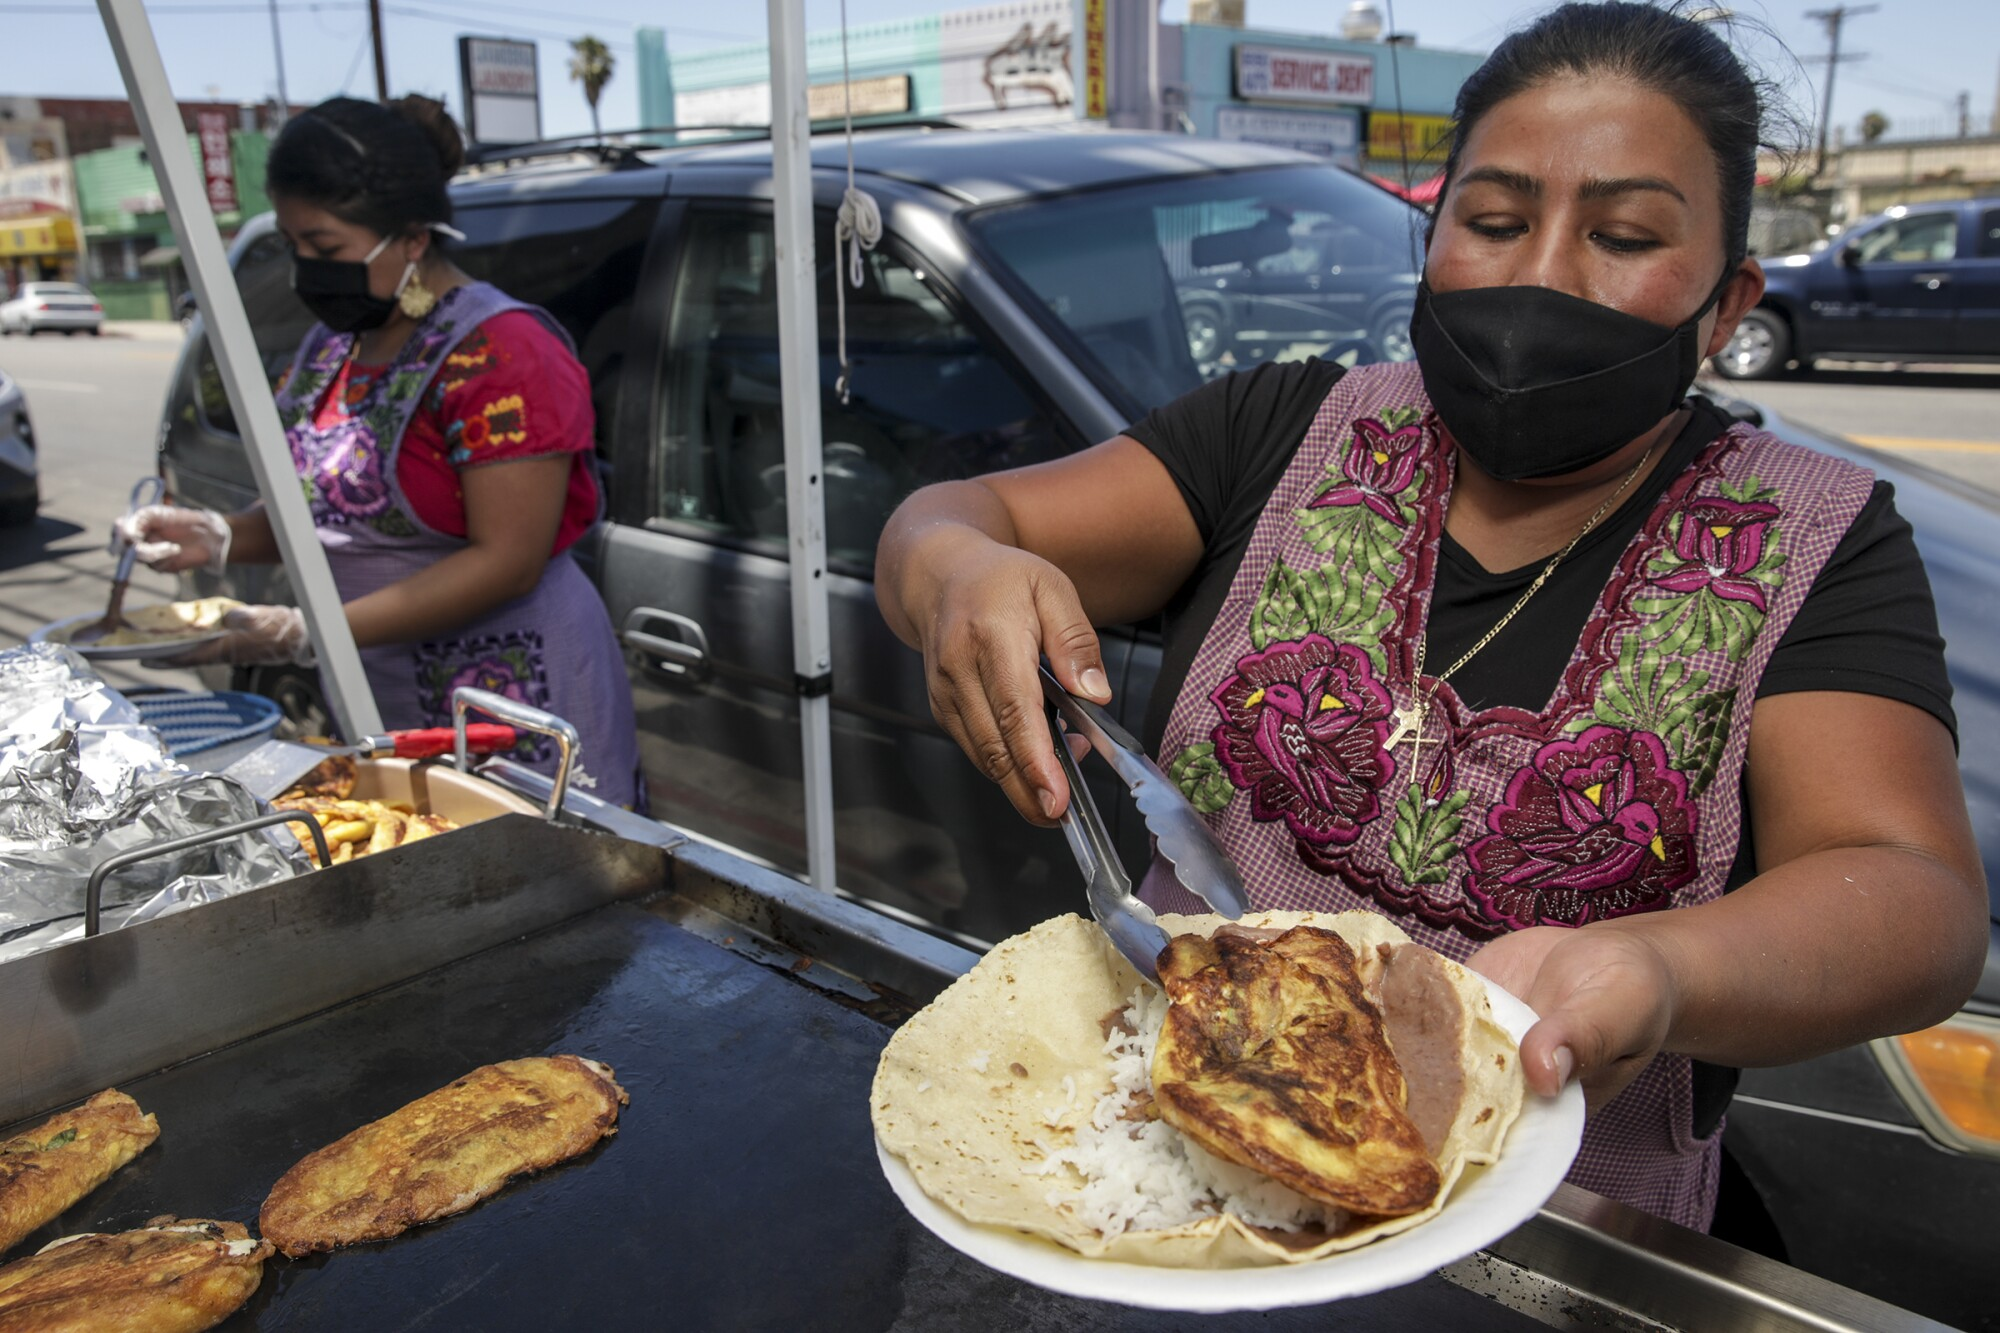 Two woman wearing masks cook outside